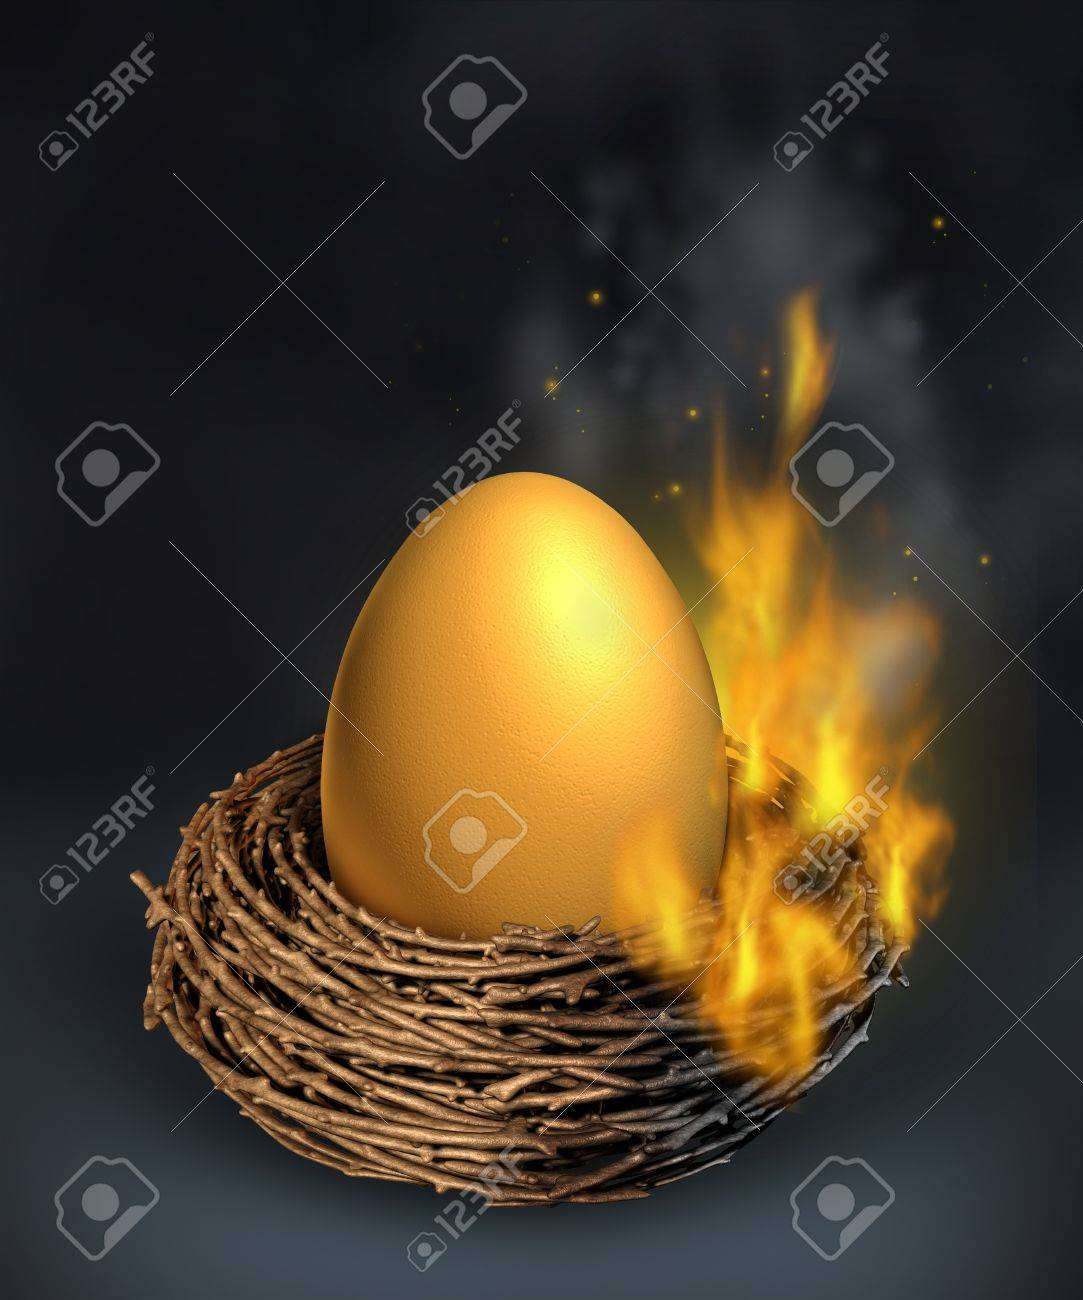 Savings crisis with a burning golden nest egg going up in flames as a financial concept of money despair and challenges managing debt problems due to economic downturn or overspending and going over budget Stock Photo - 15845970